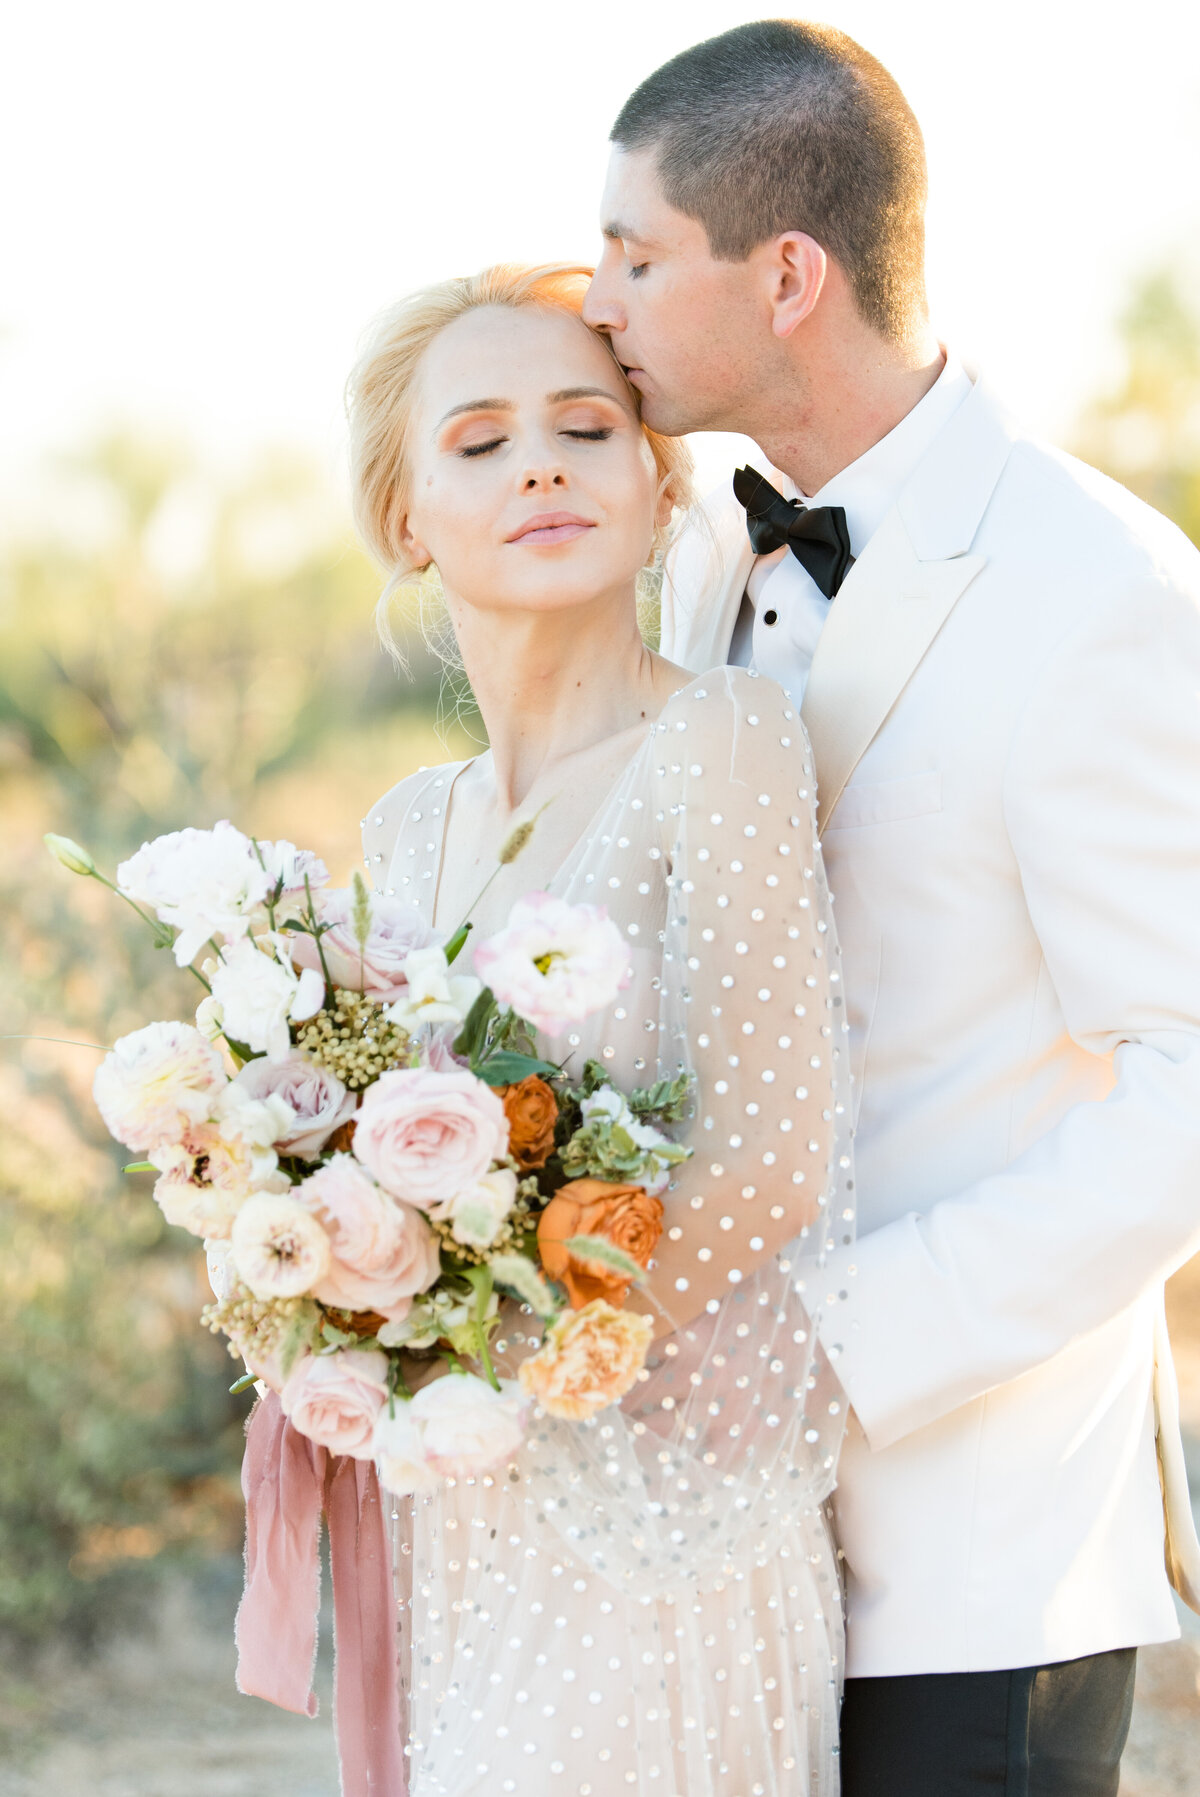 A groom kisses his bride lovingly on their wedding day at DC Ranch in Arizona